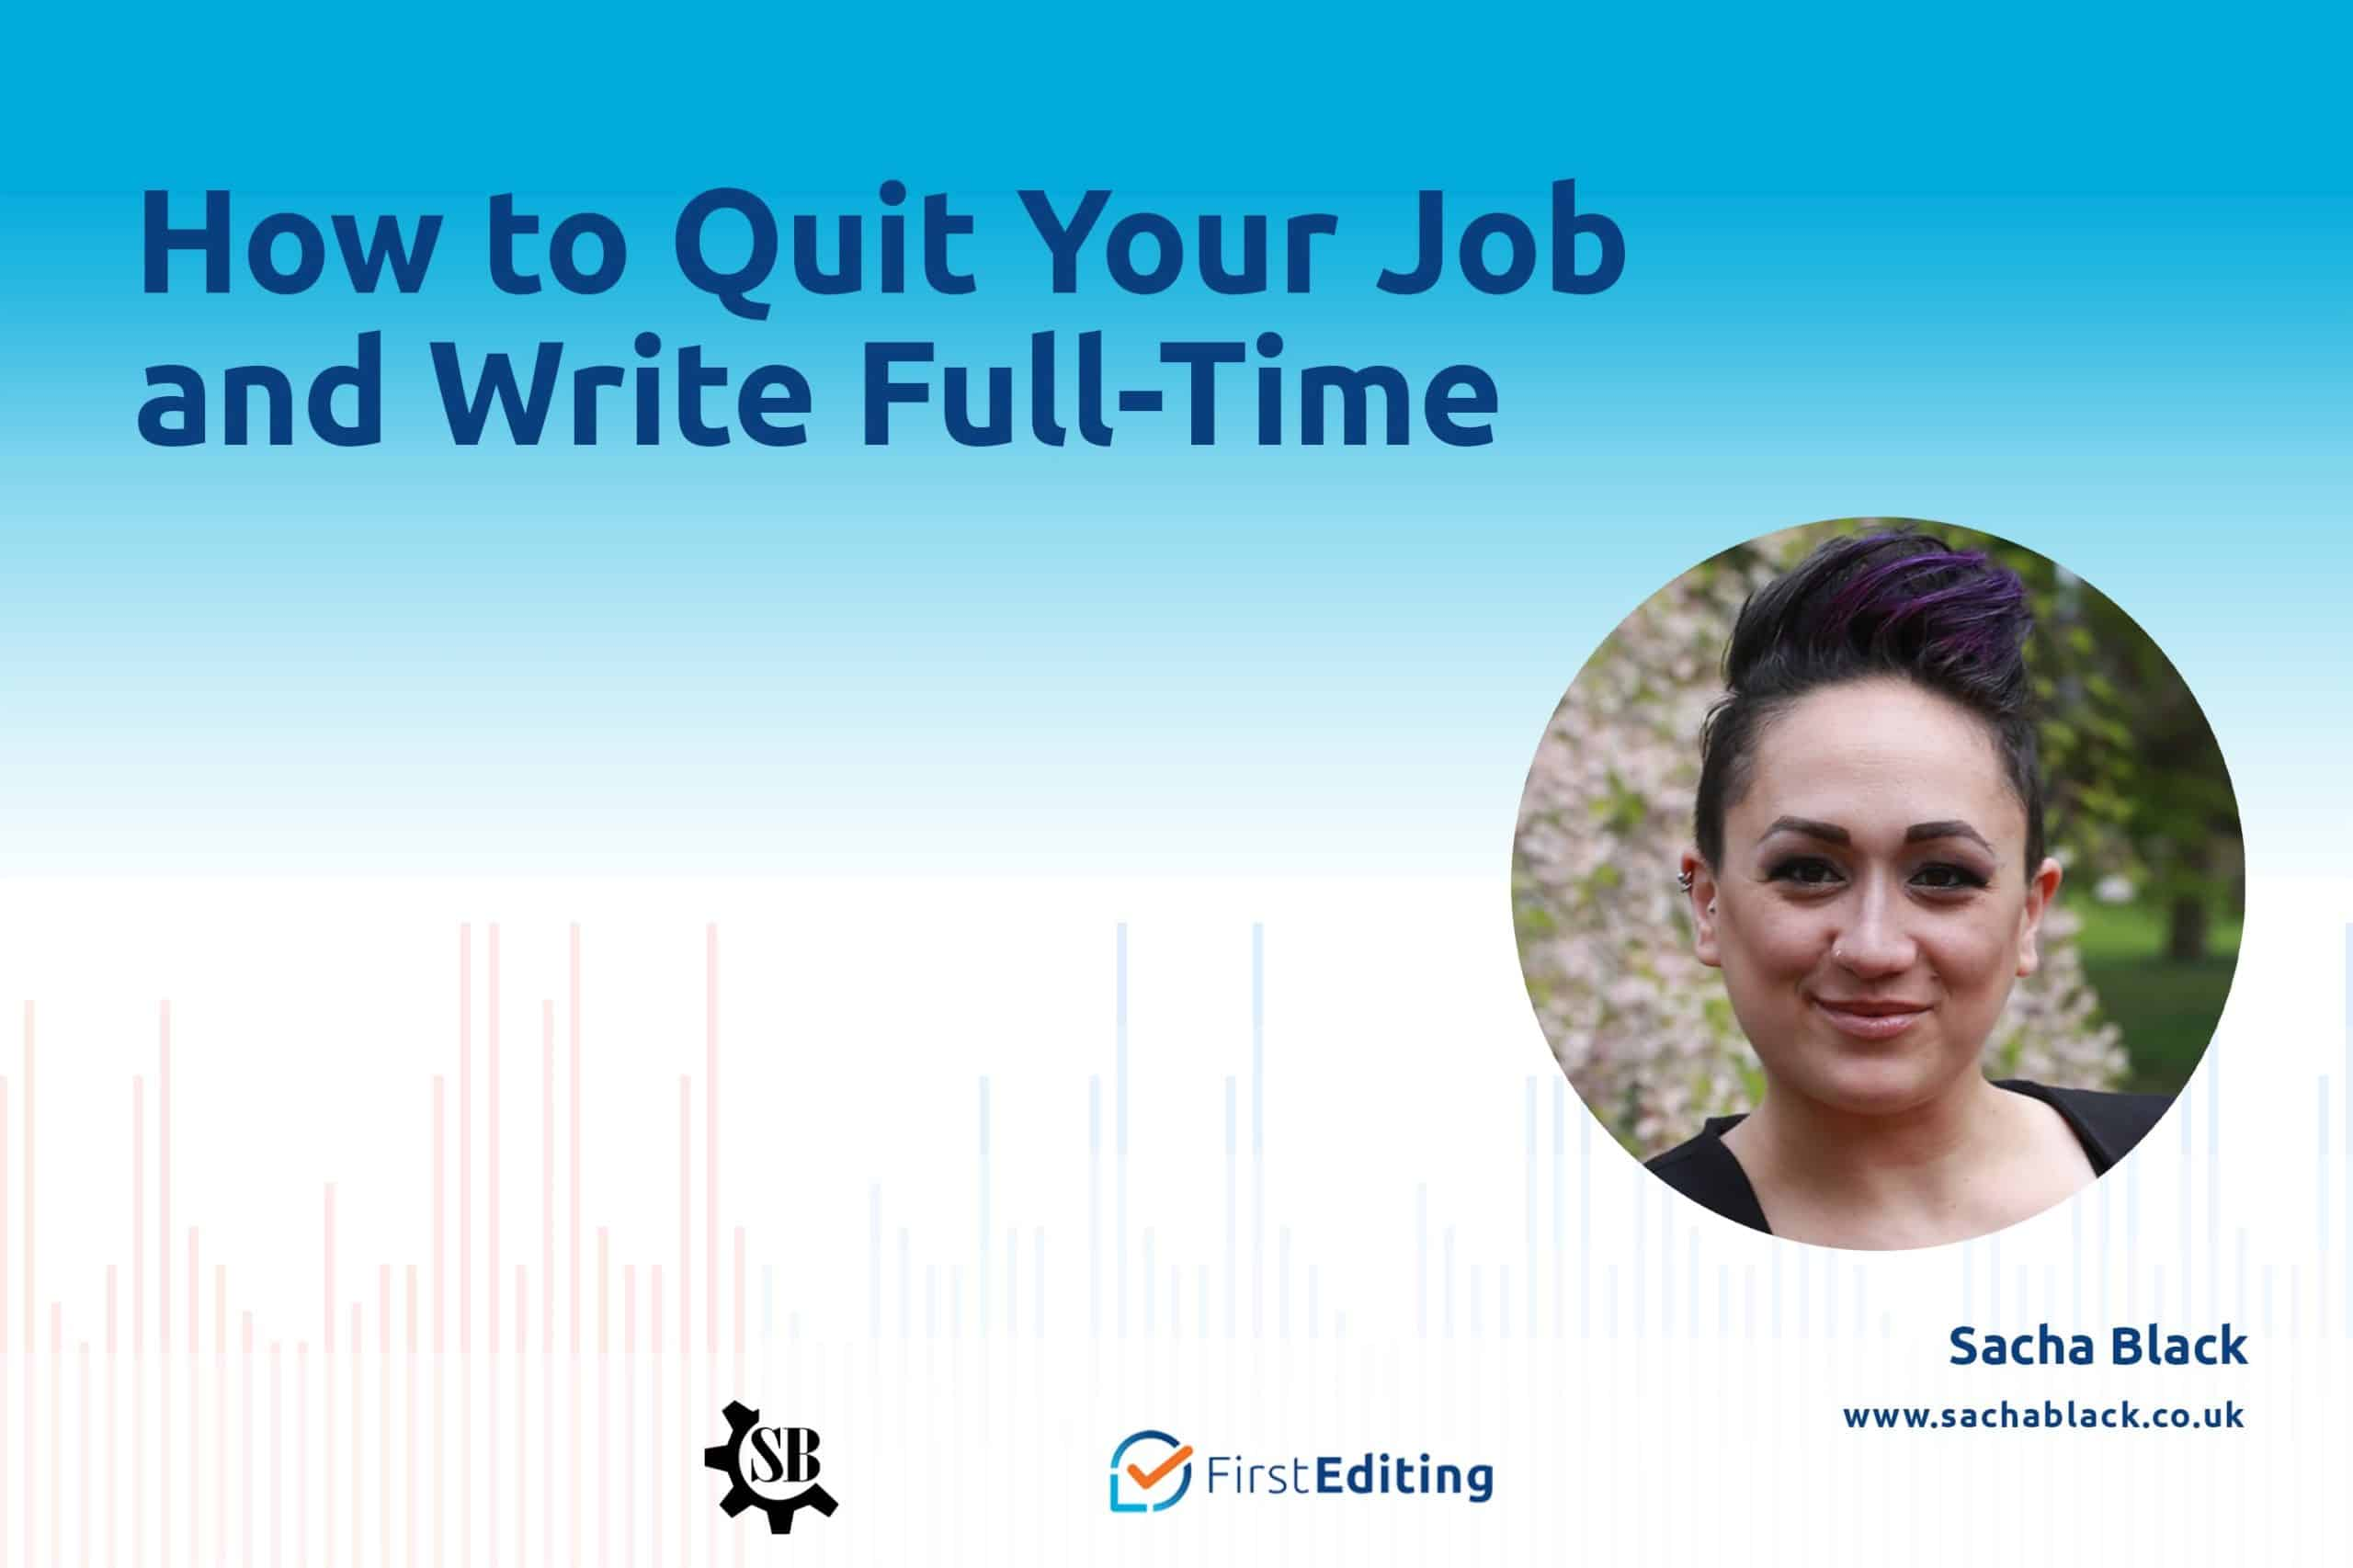 How to Quit Your Job and Write Full-Time with Sacha Black